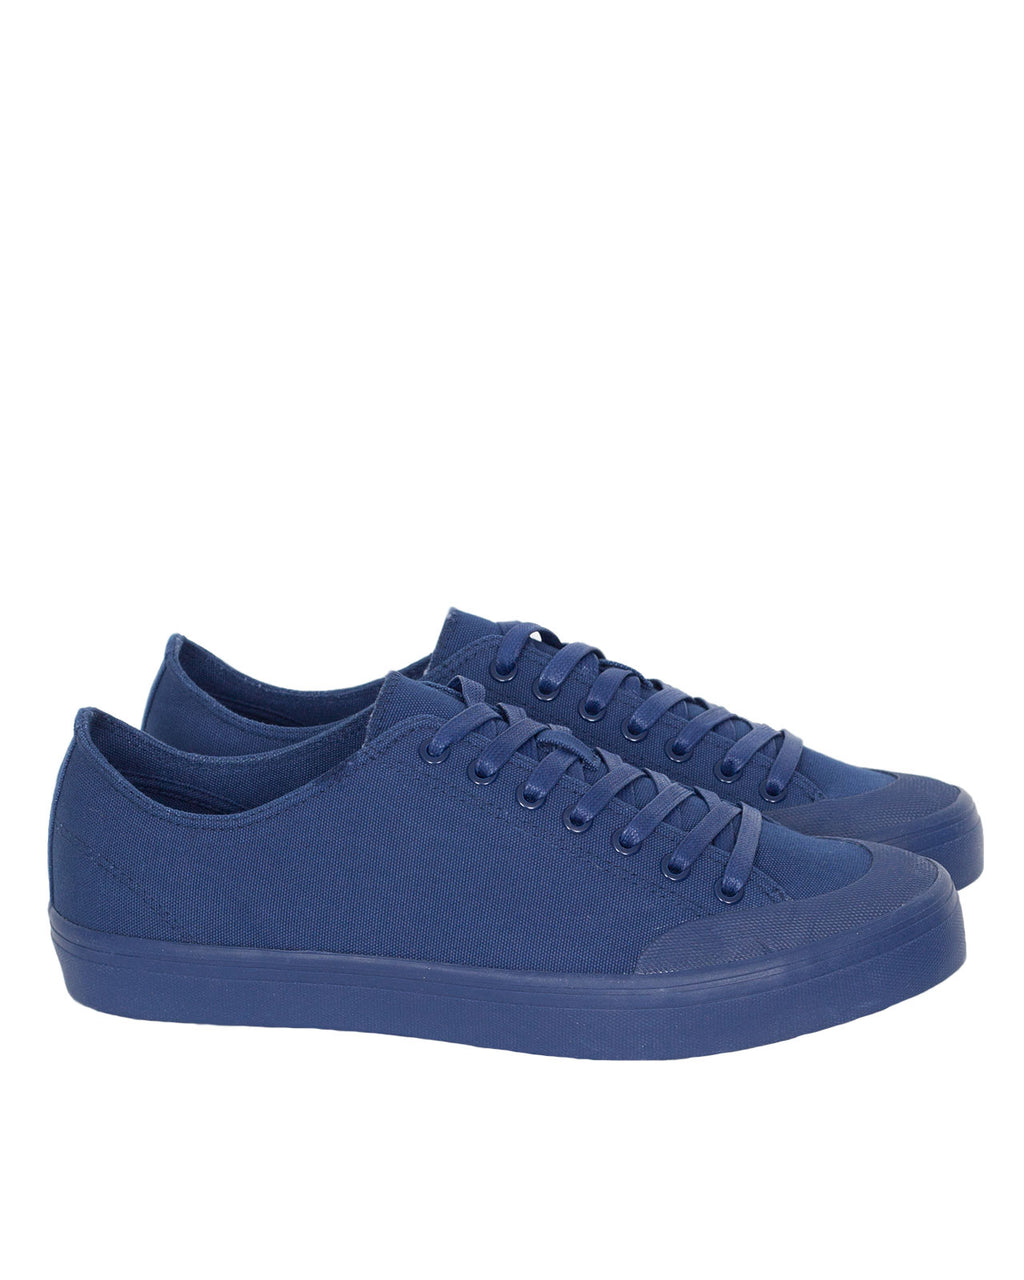 Erik Schedin Canvas Sneaker, Deep Blue